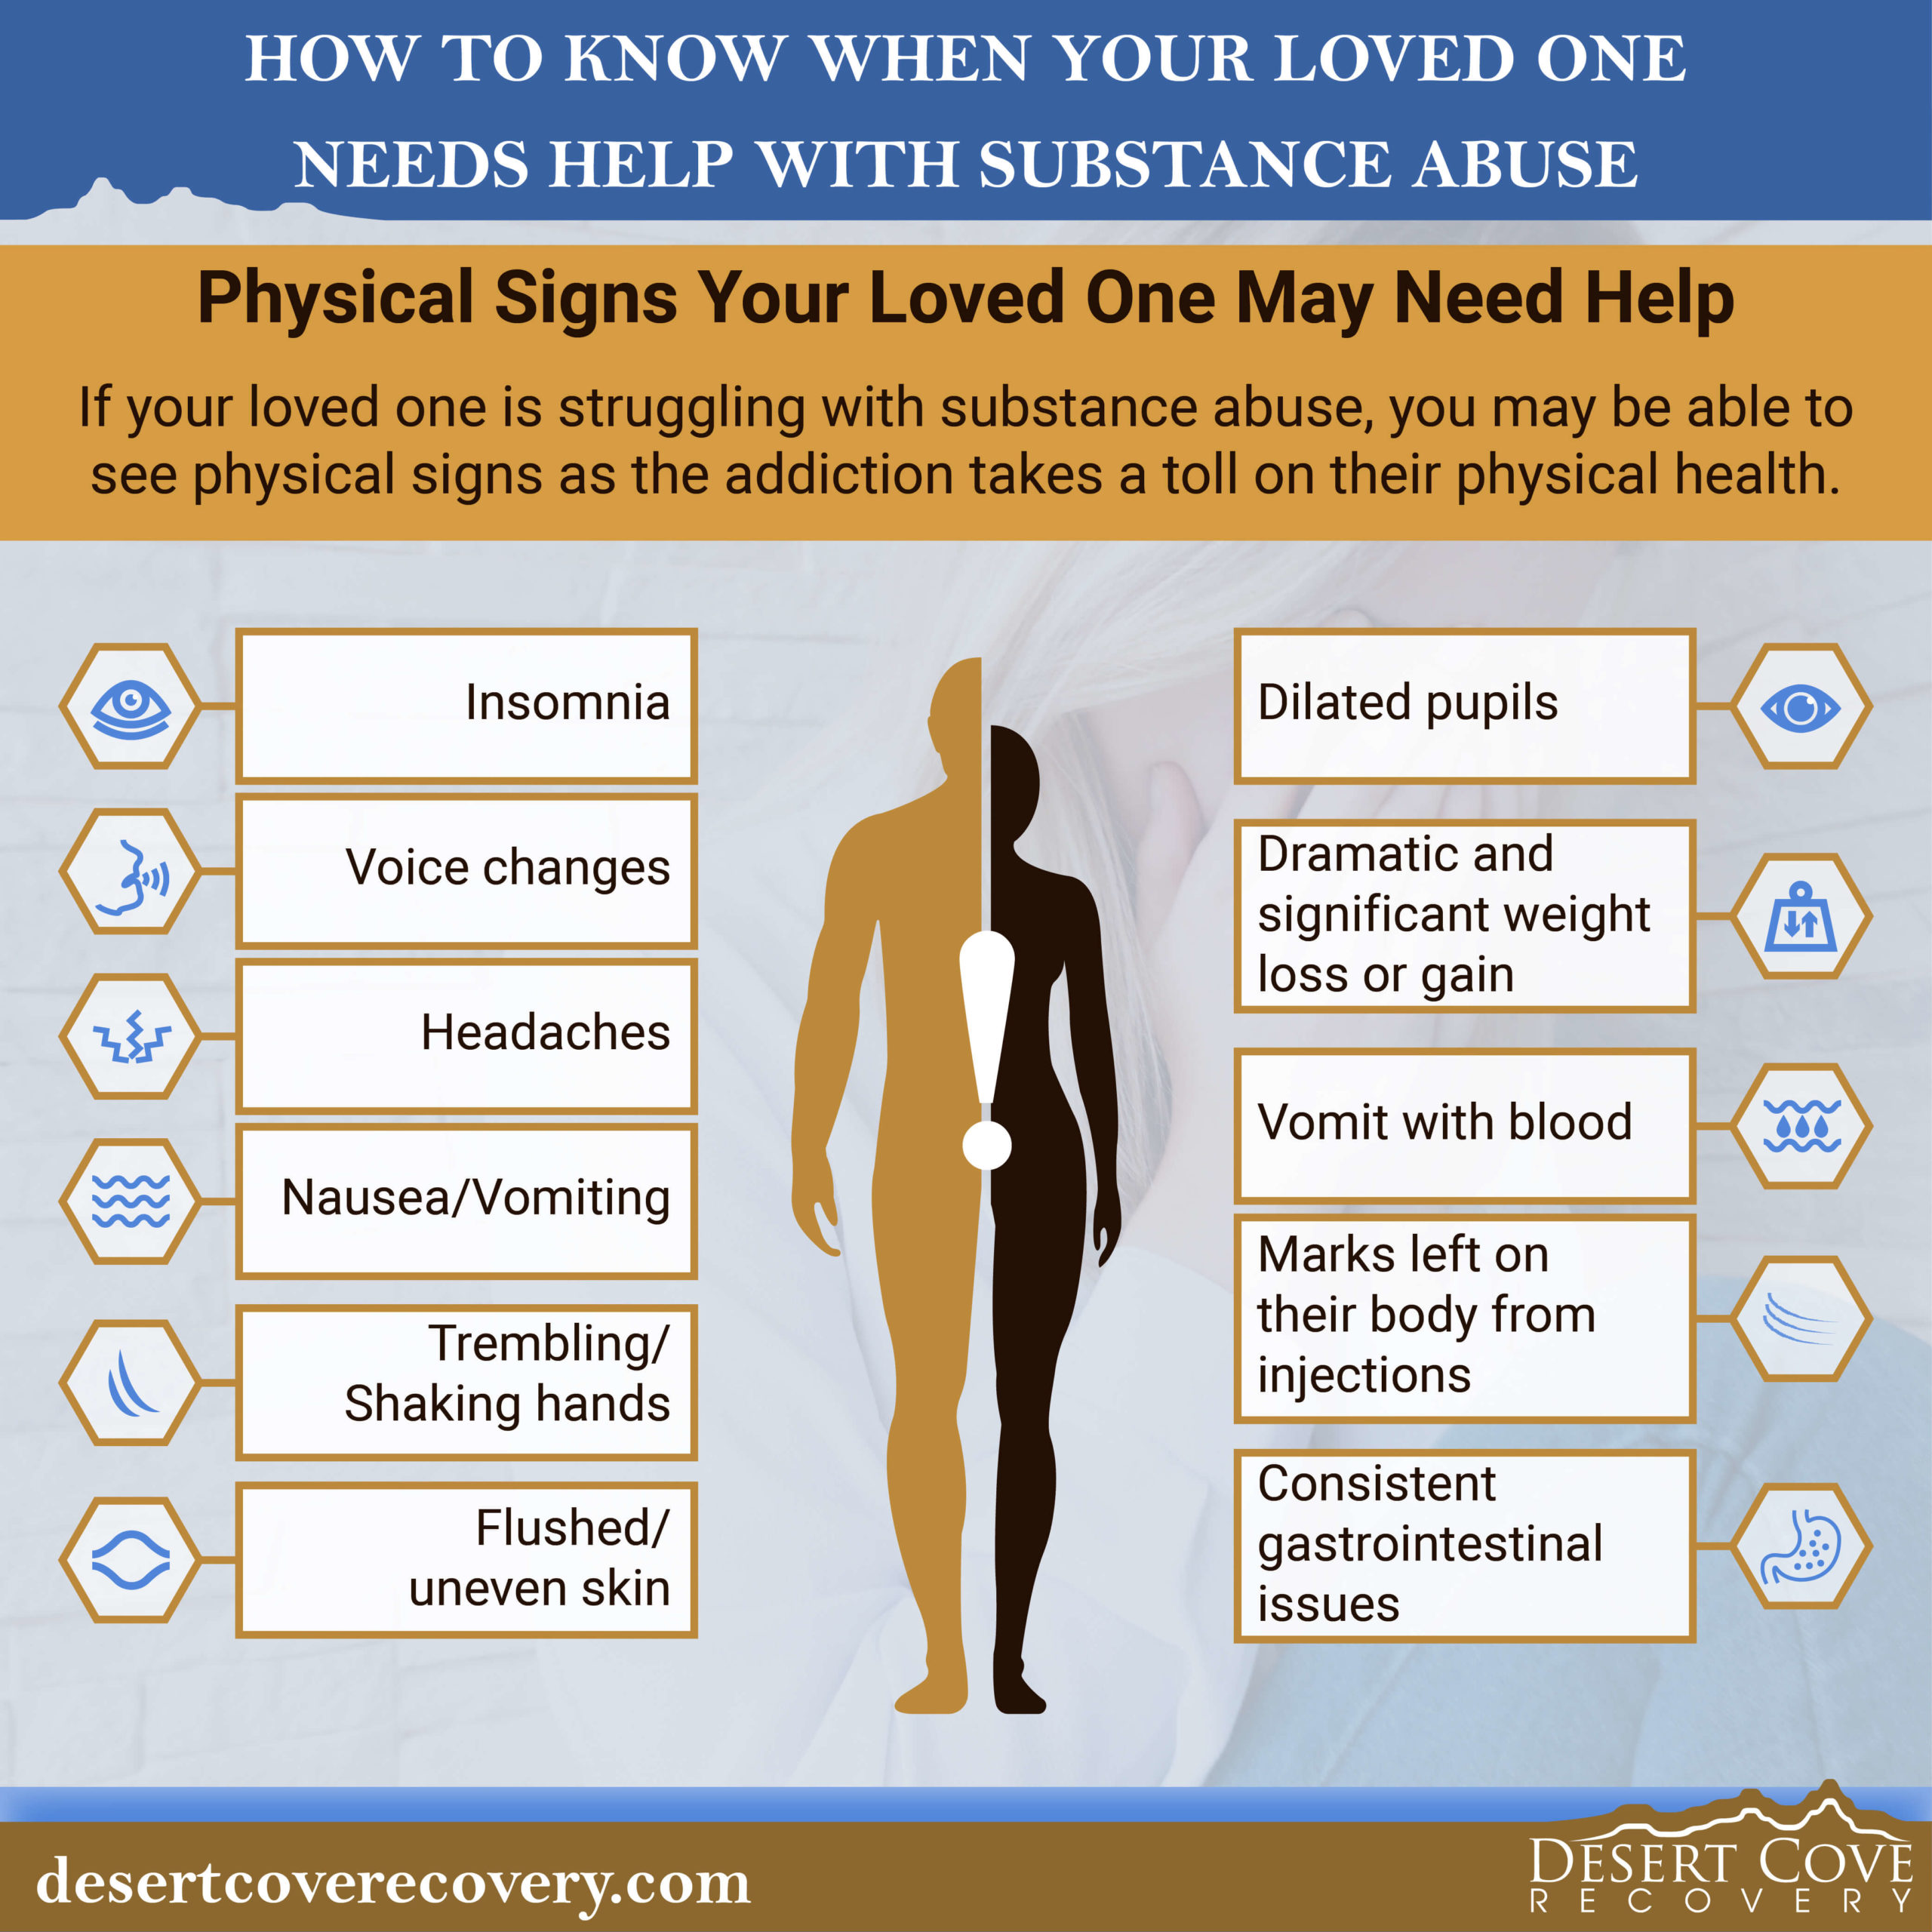 physical signs that someone needs help with substance abuse